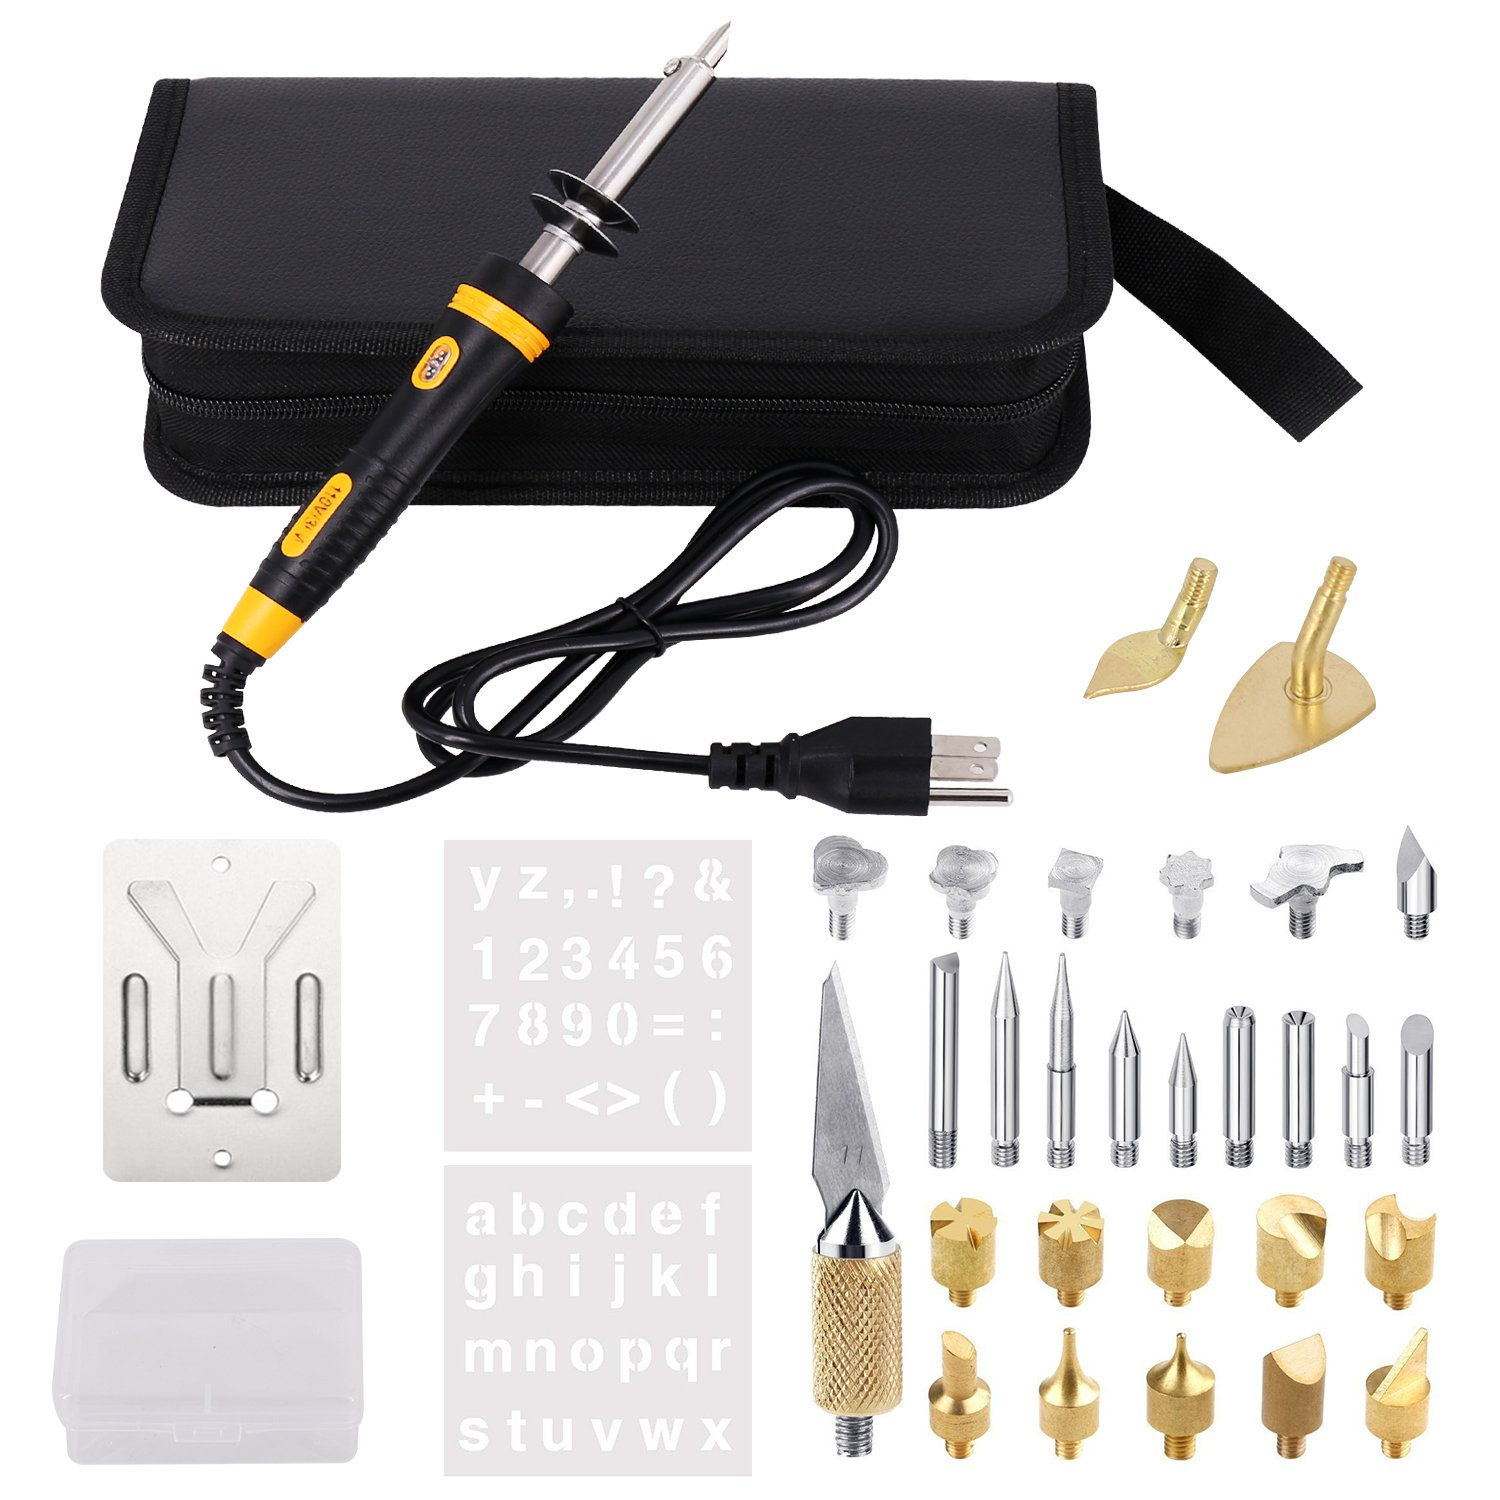 Full Set Wood Burning Kit, Pyrography Pen with LED Indicator light + Various Wood Embossing/Carving/Soldering Tips +Stencil + Stand + Carrying Case (X)